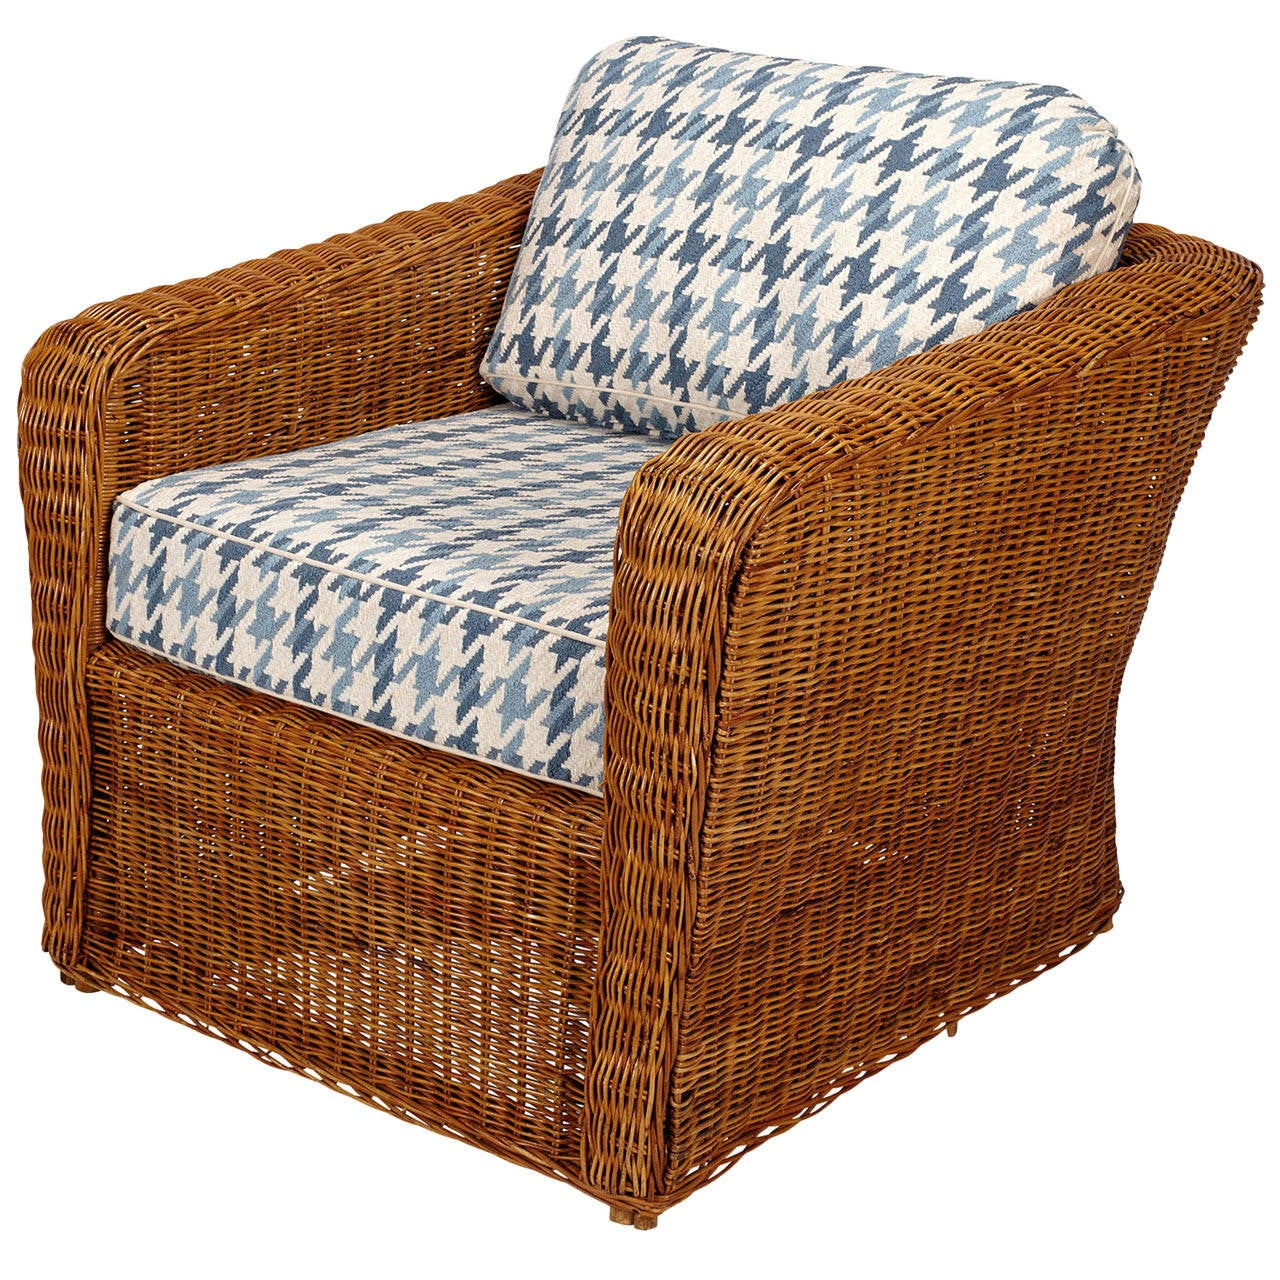 Wicker Club Chair For Sale at 1stdibs